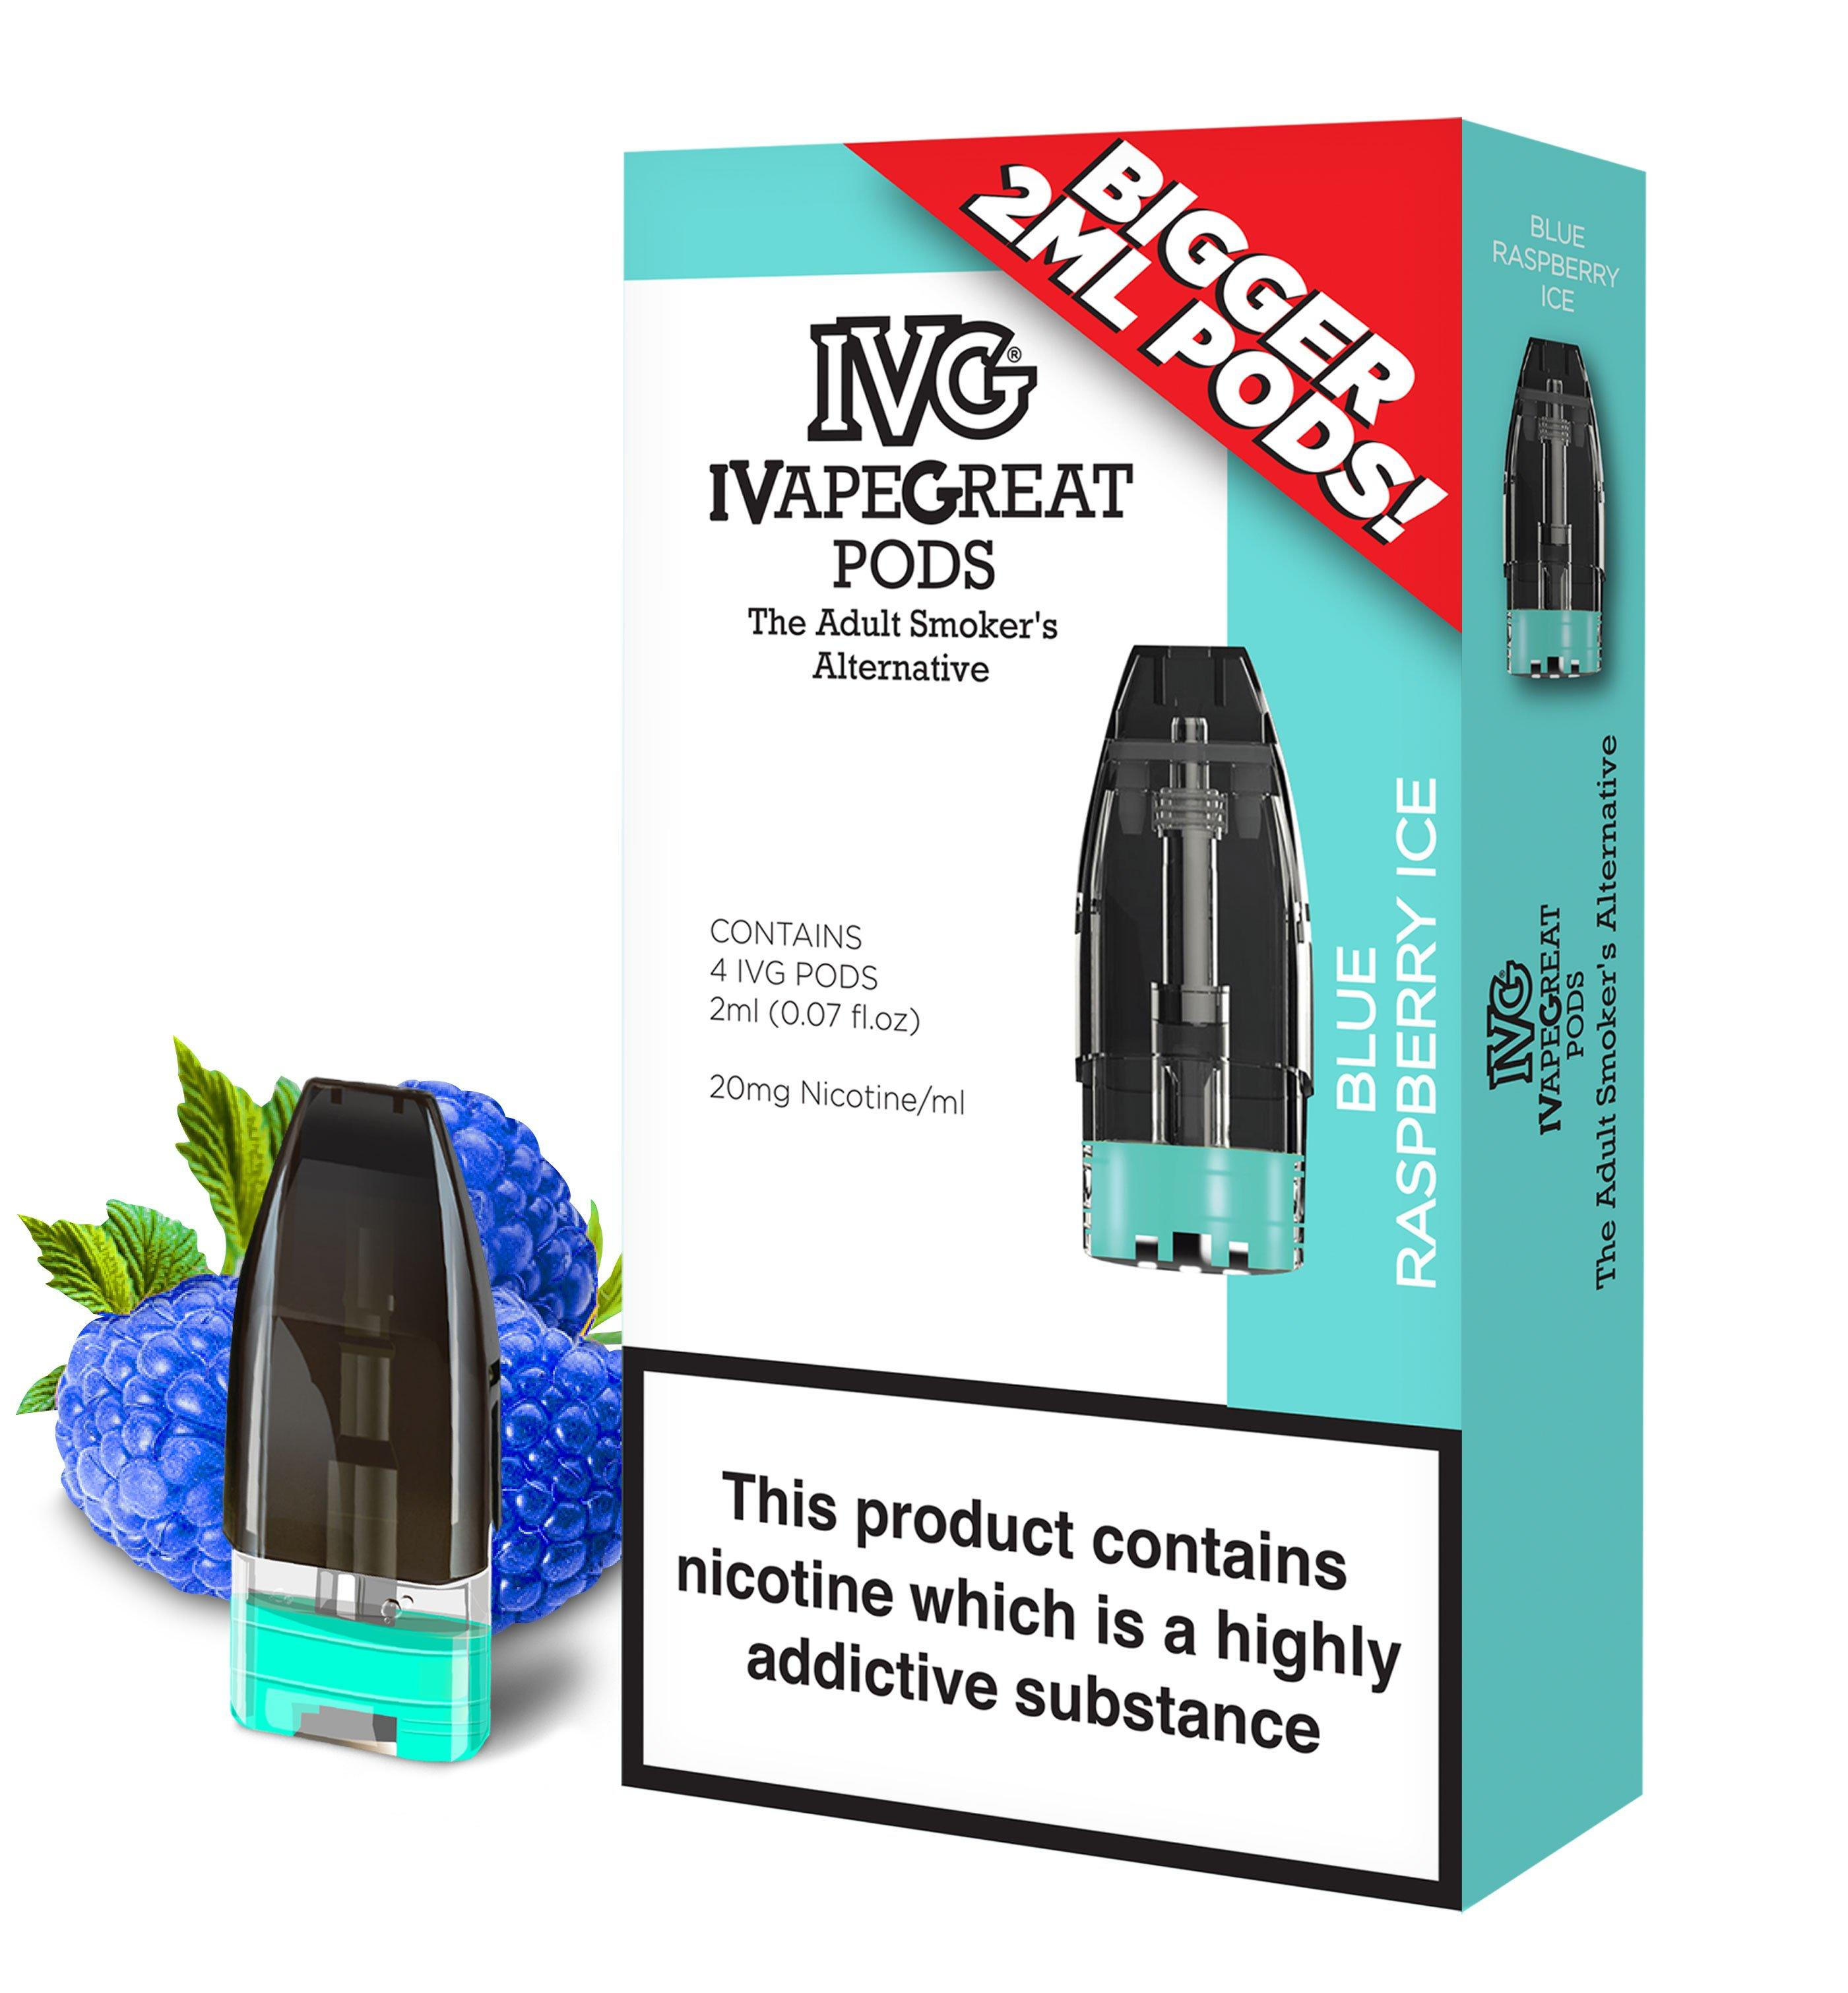 IVG Blue Raspberry flavour replacement pods for the IVG Pod Kit - from Which Vape Ltd